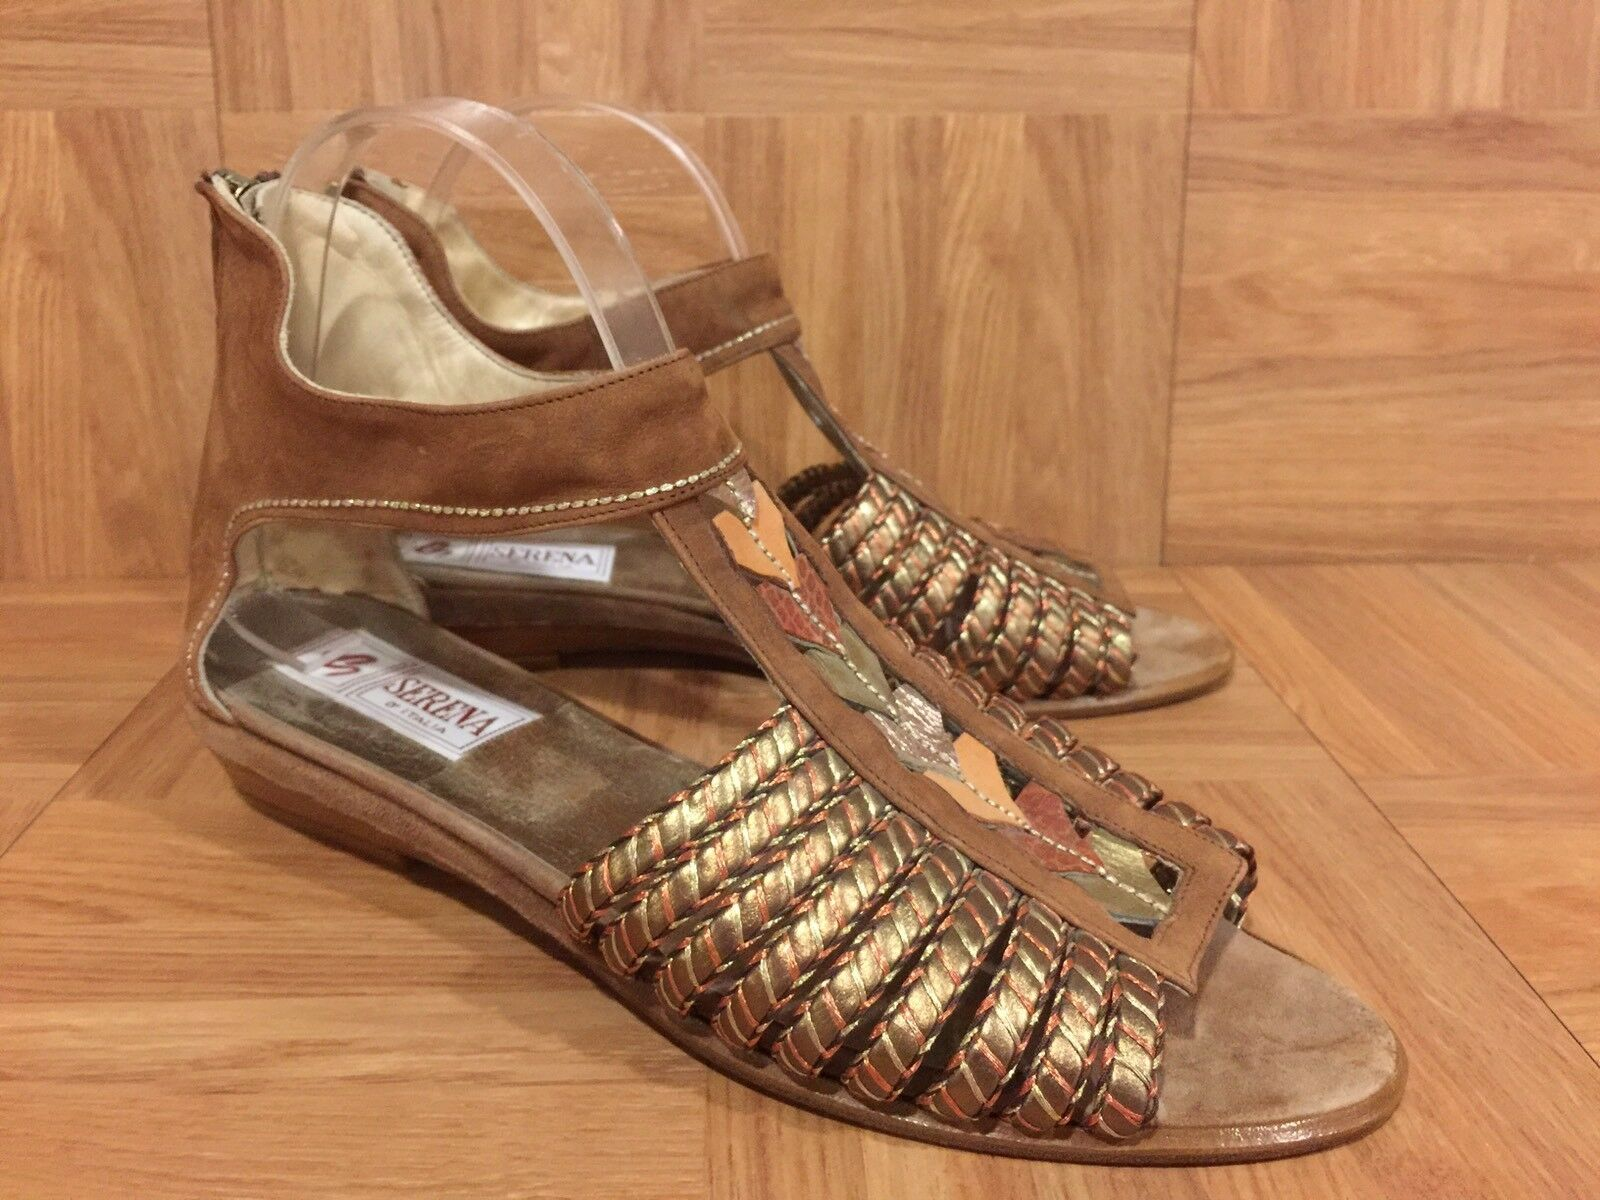 Serena D'Italia Low Wedge Sandals Gold Woven Leather Sz 40.5 9 US